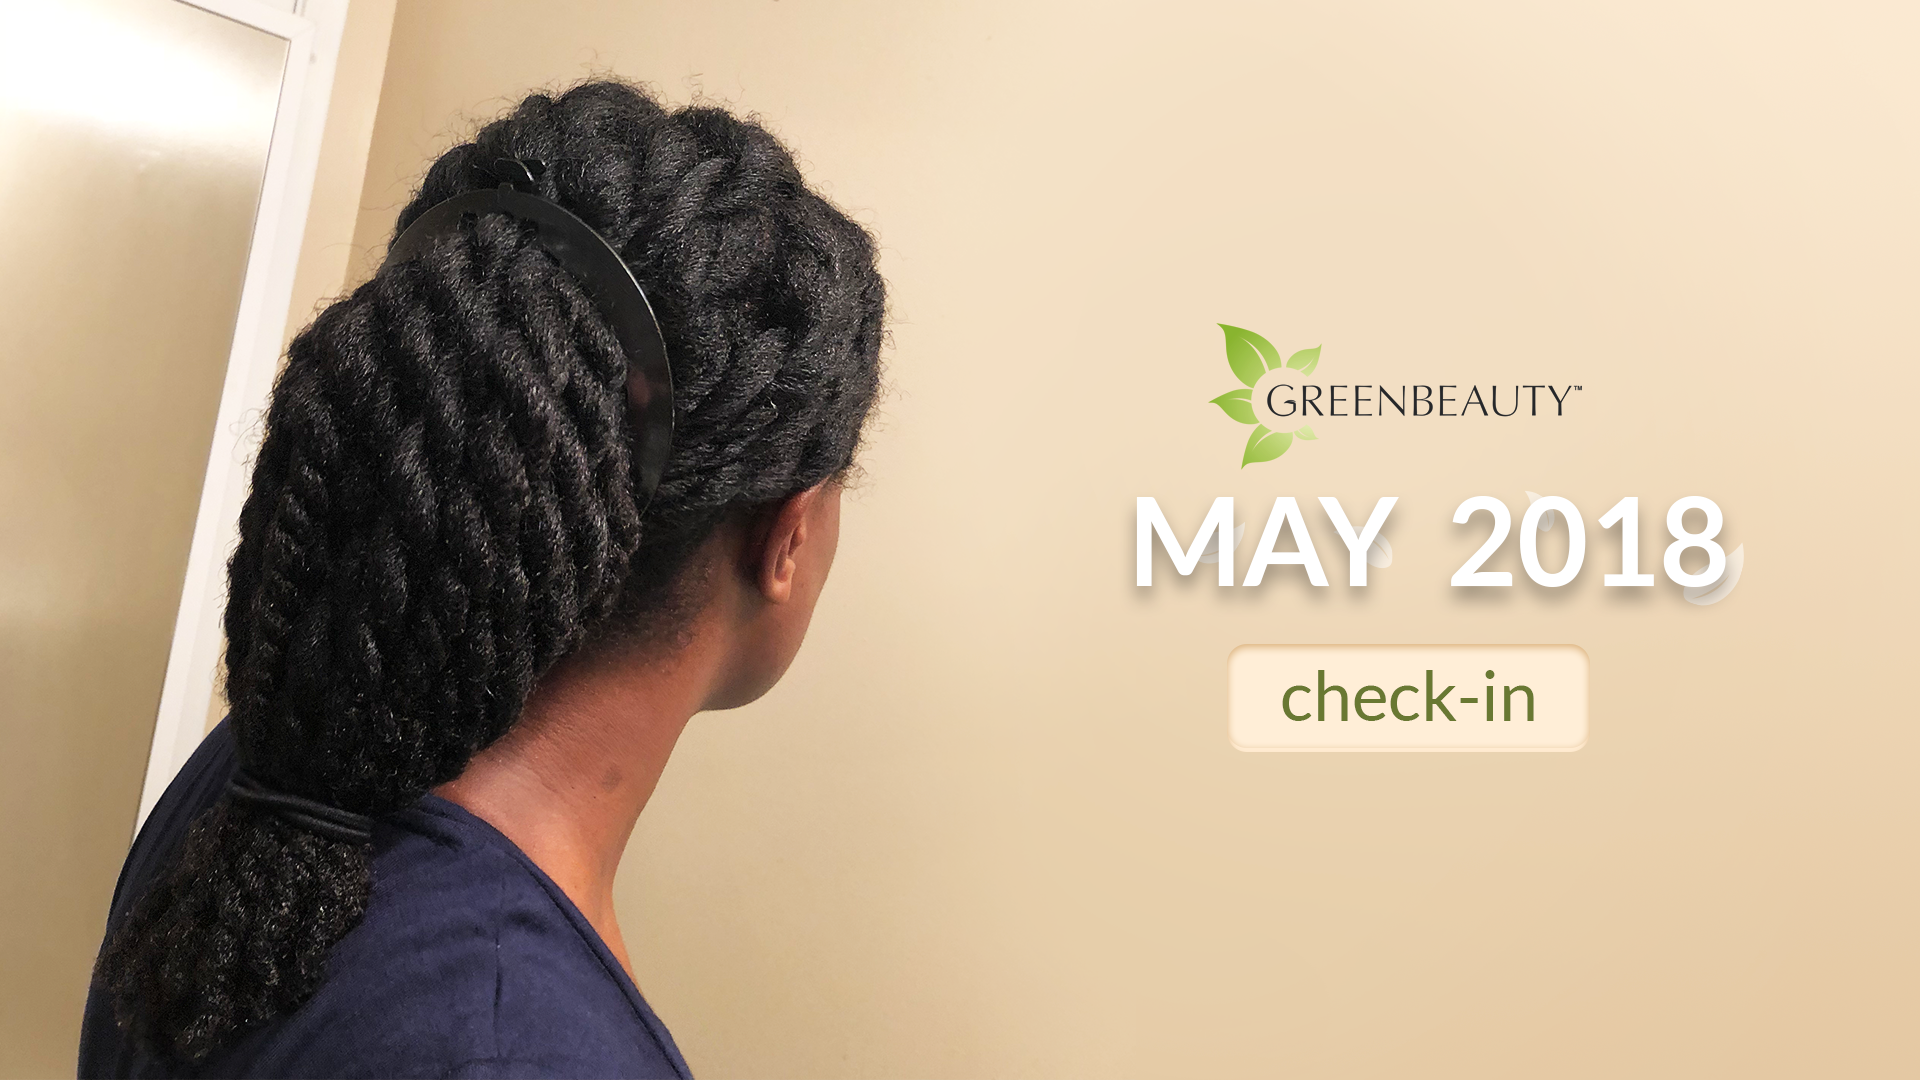 #GreenBeauty #NaturalHair #HealthCheck